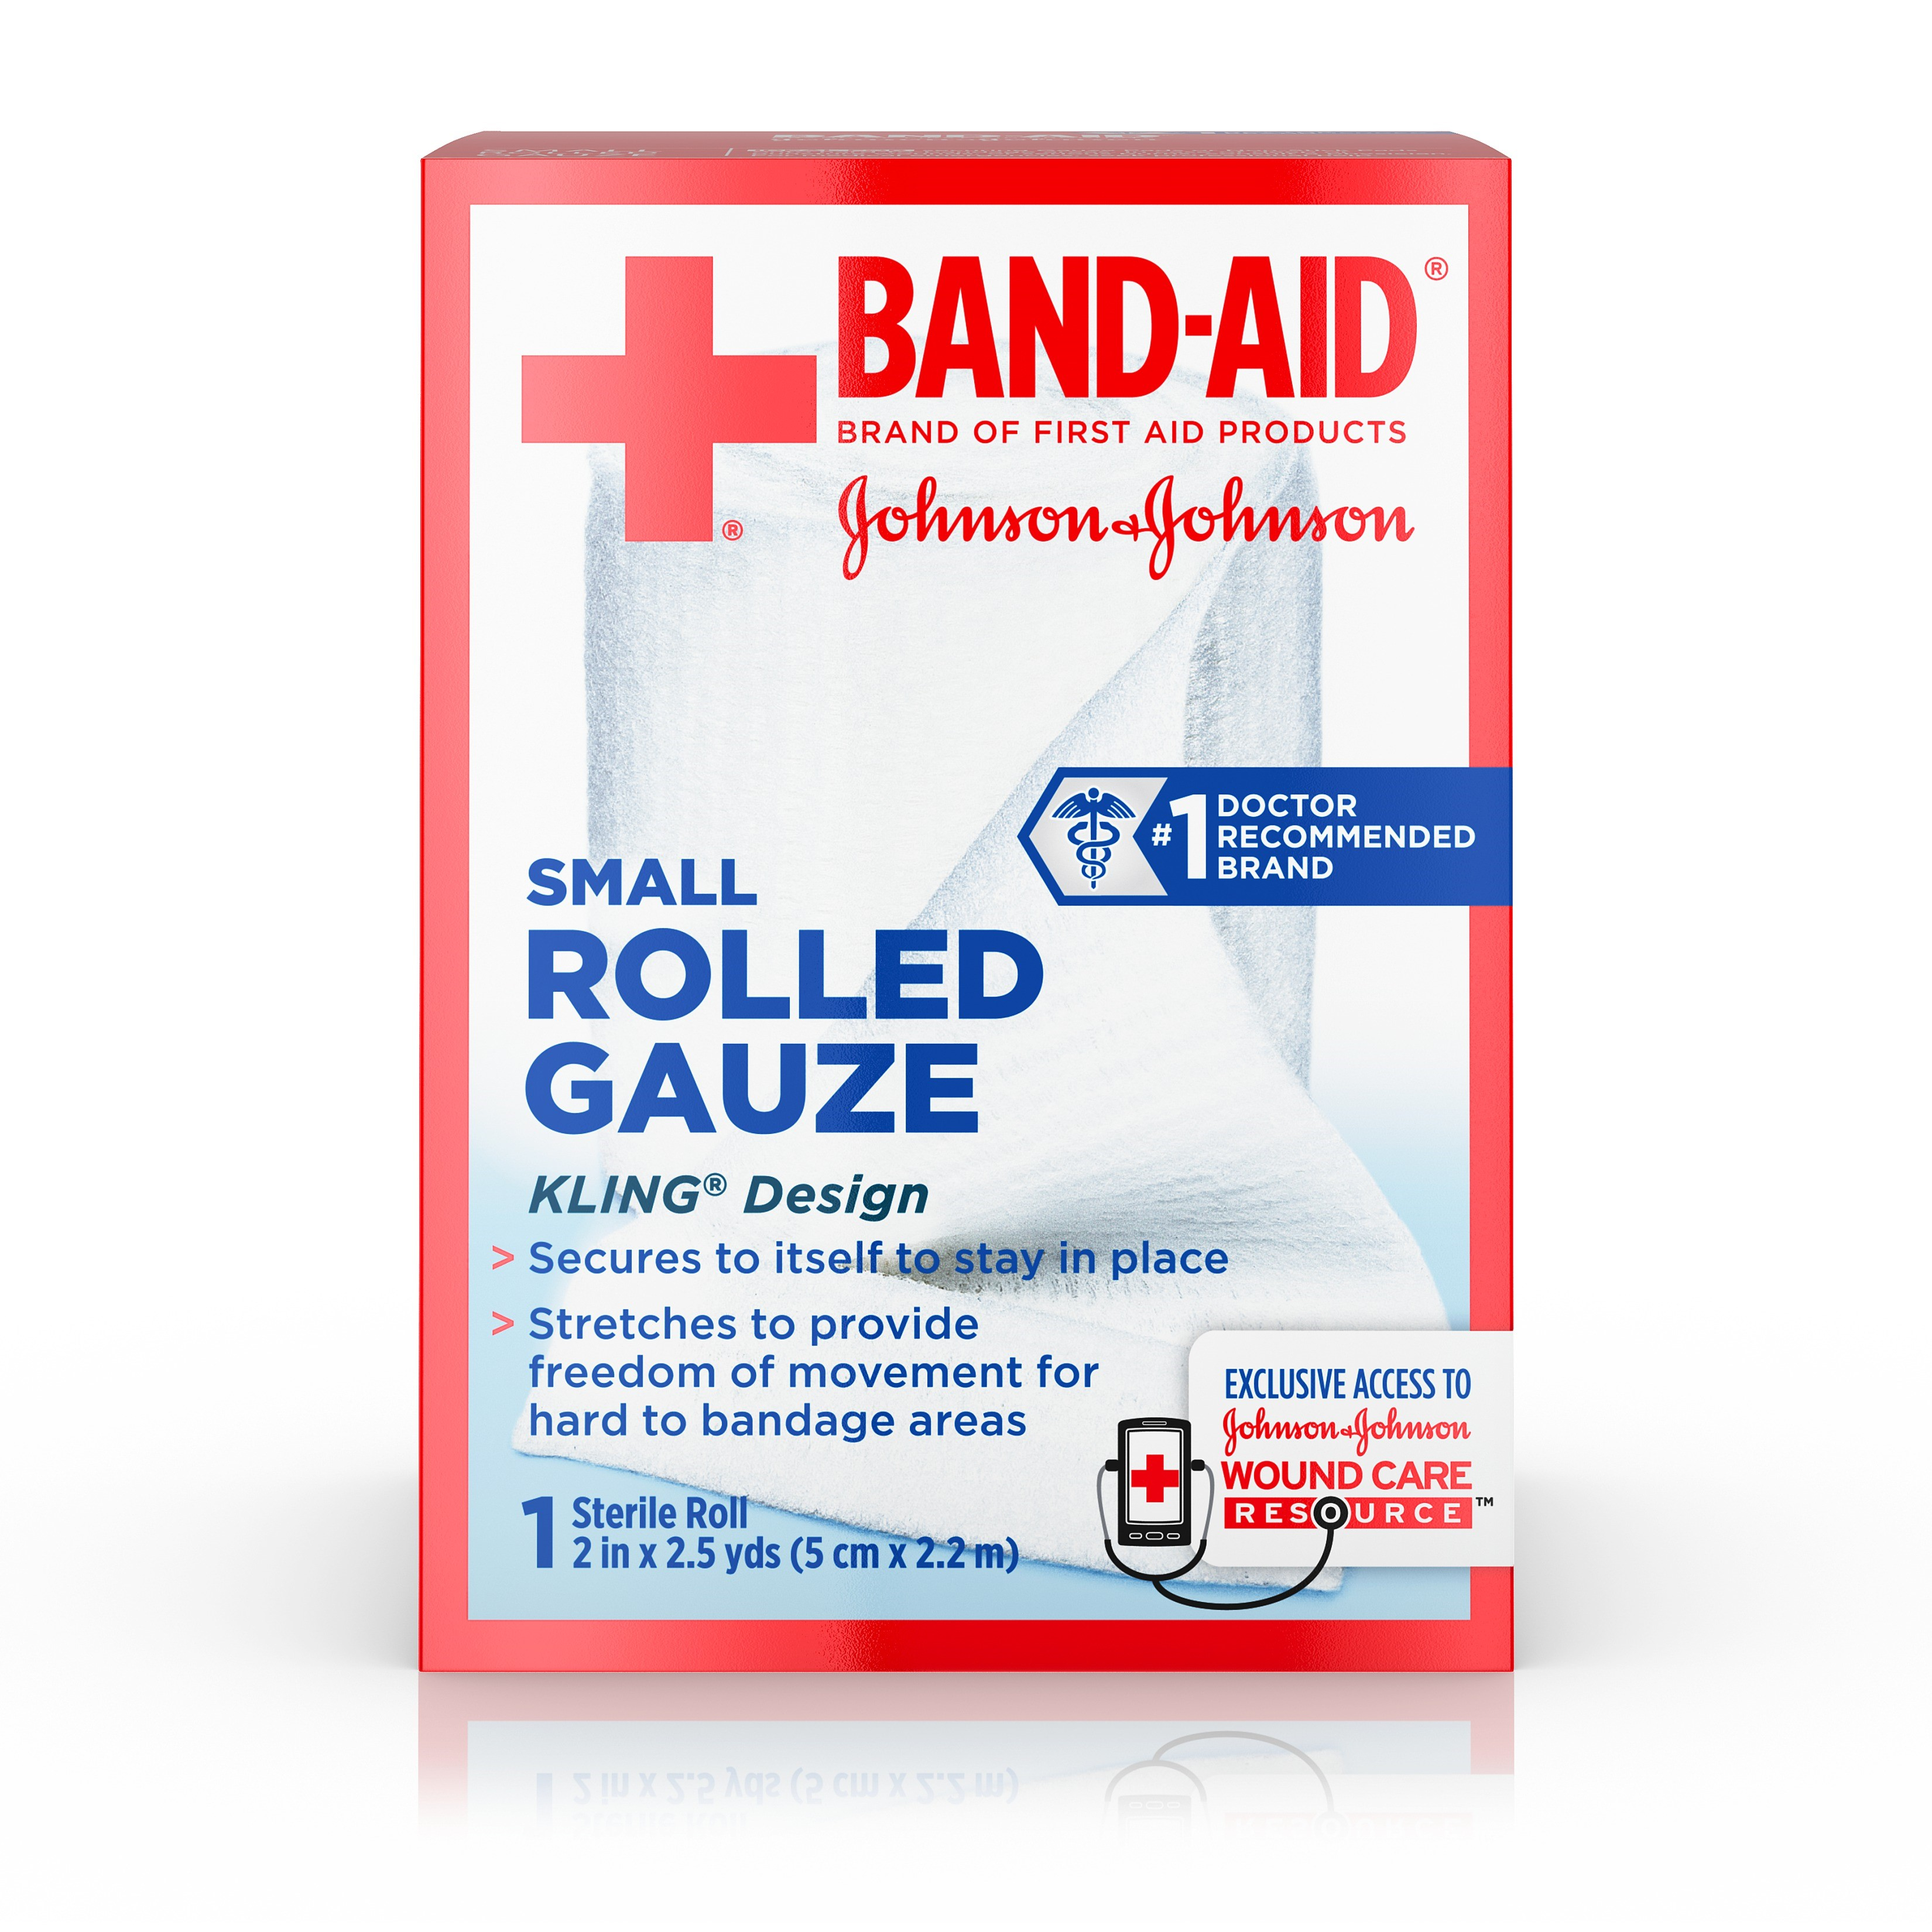 Band-Aid Brand Of First Aid Products Rolled Gauze, 2 Inches by 2.5 Yards by Johnson & Johnson